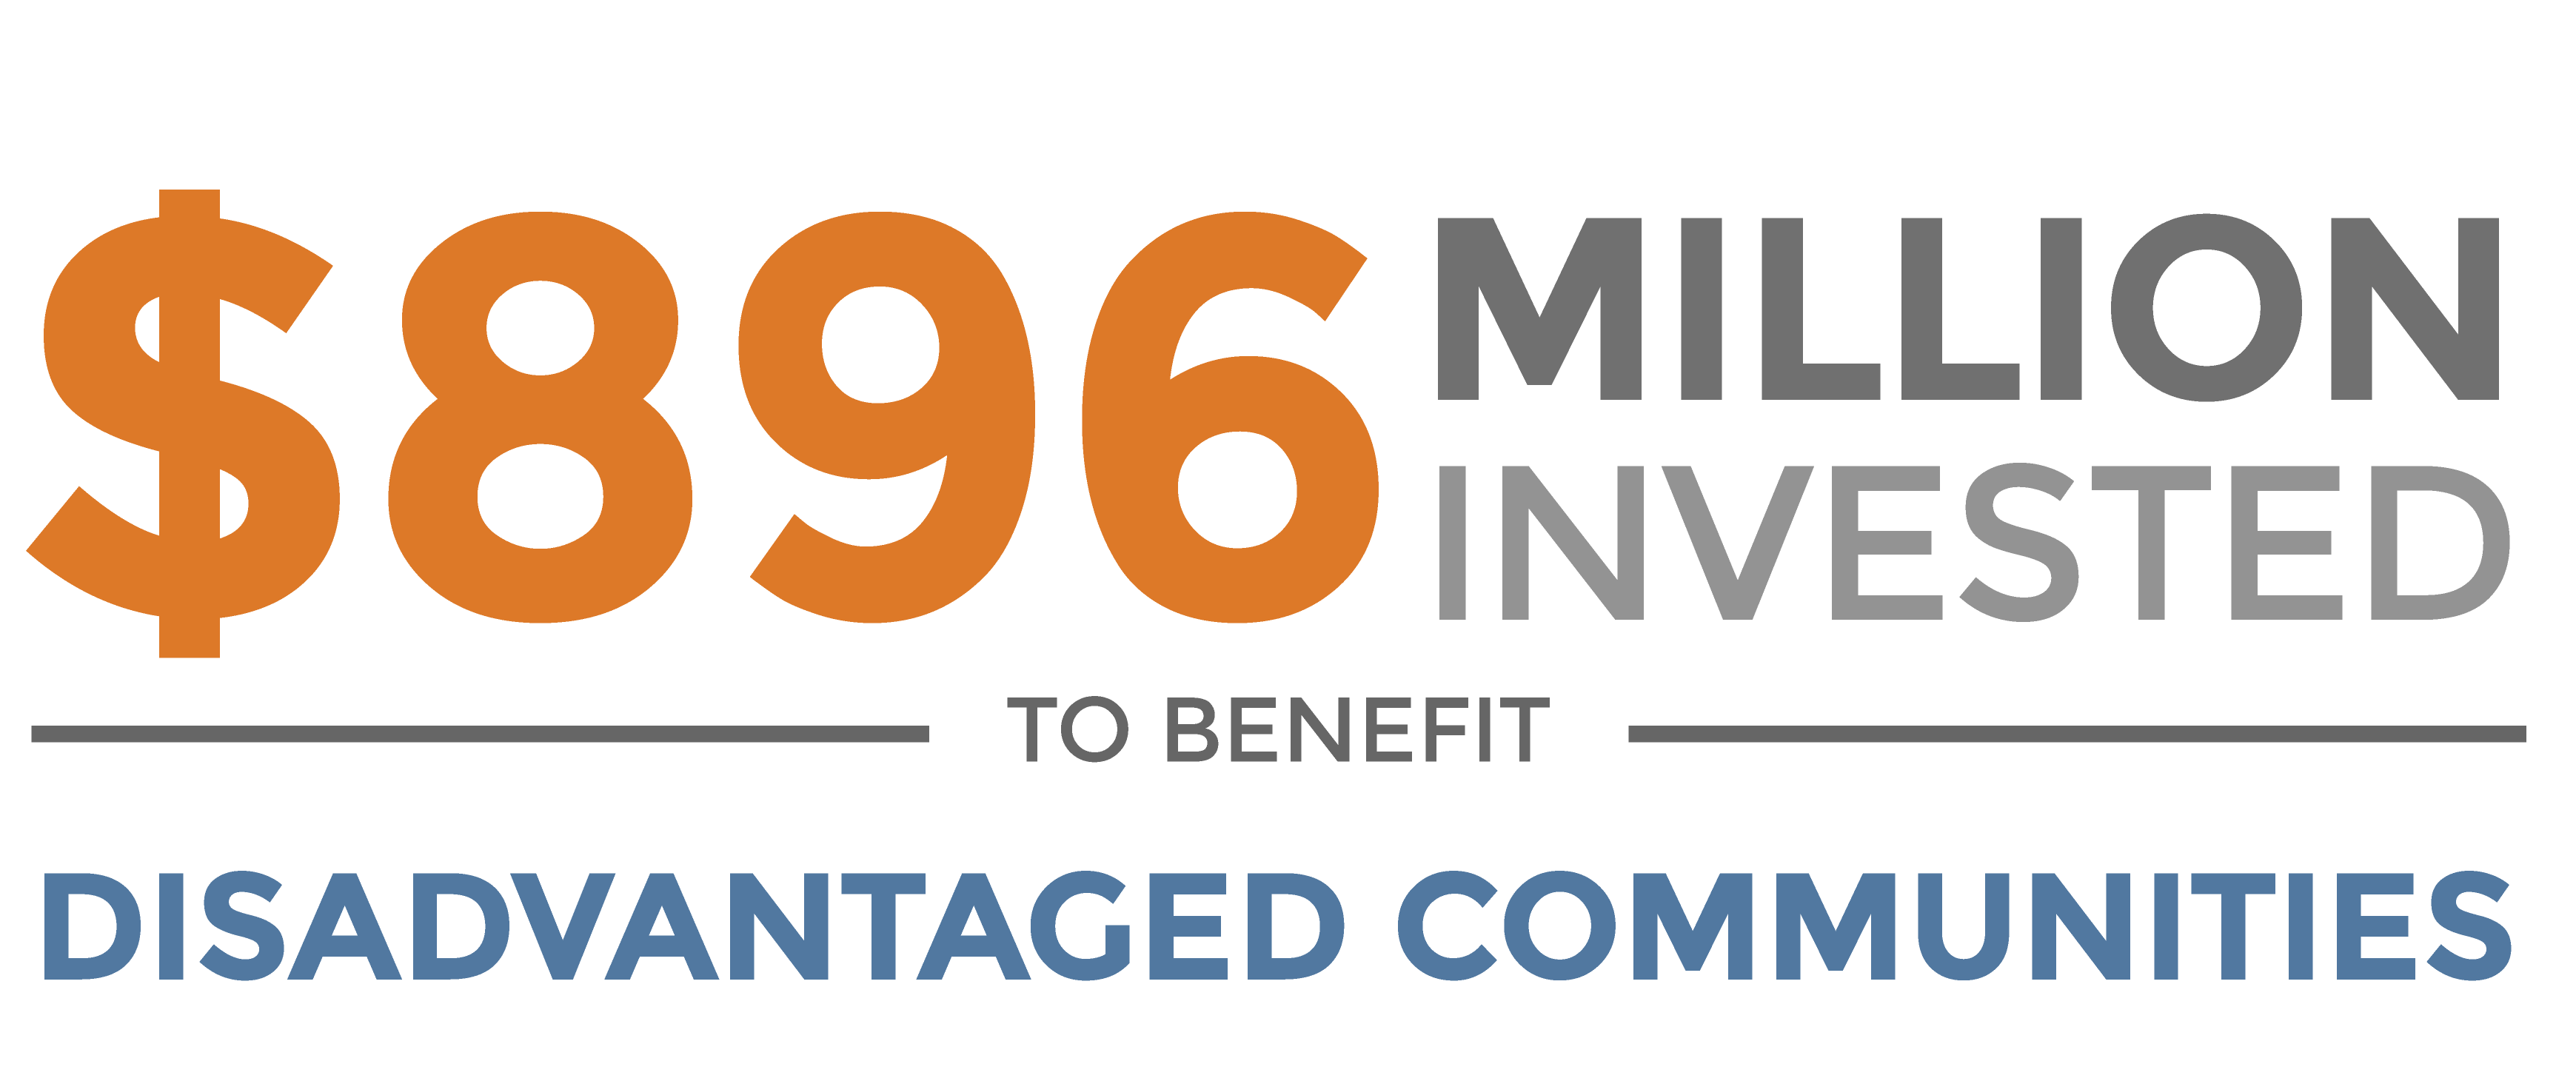 $896 million invested to benefit disadvantaged communities.